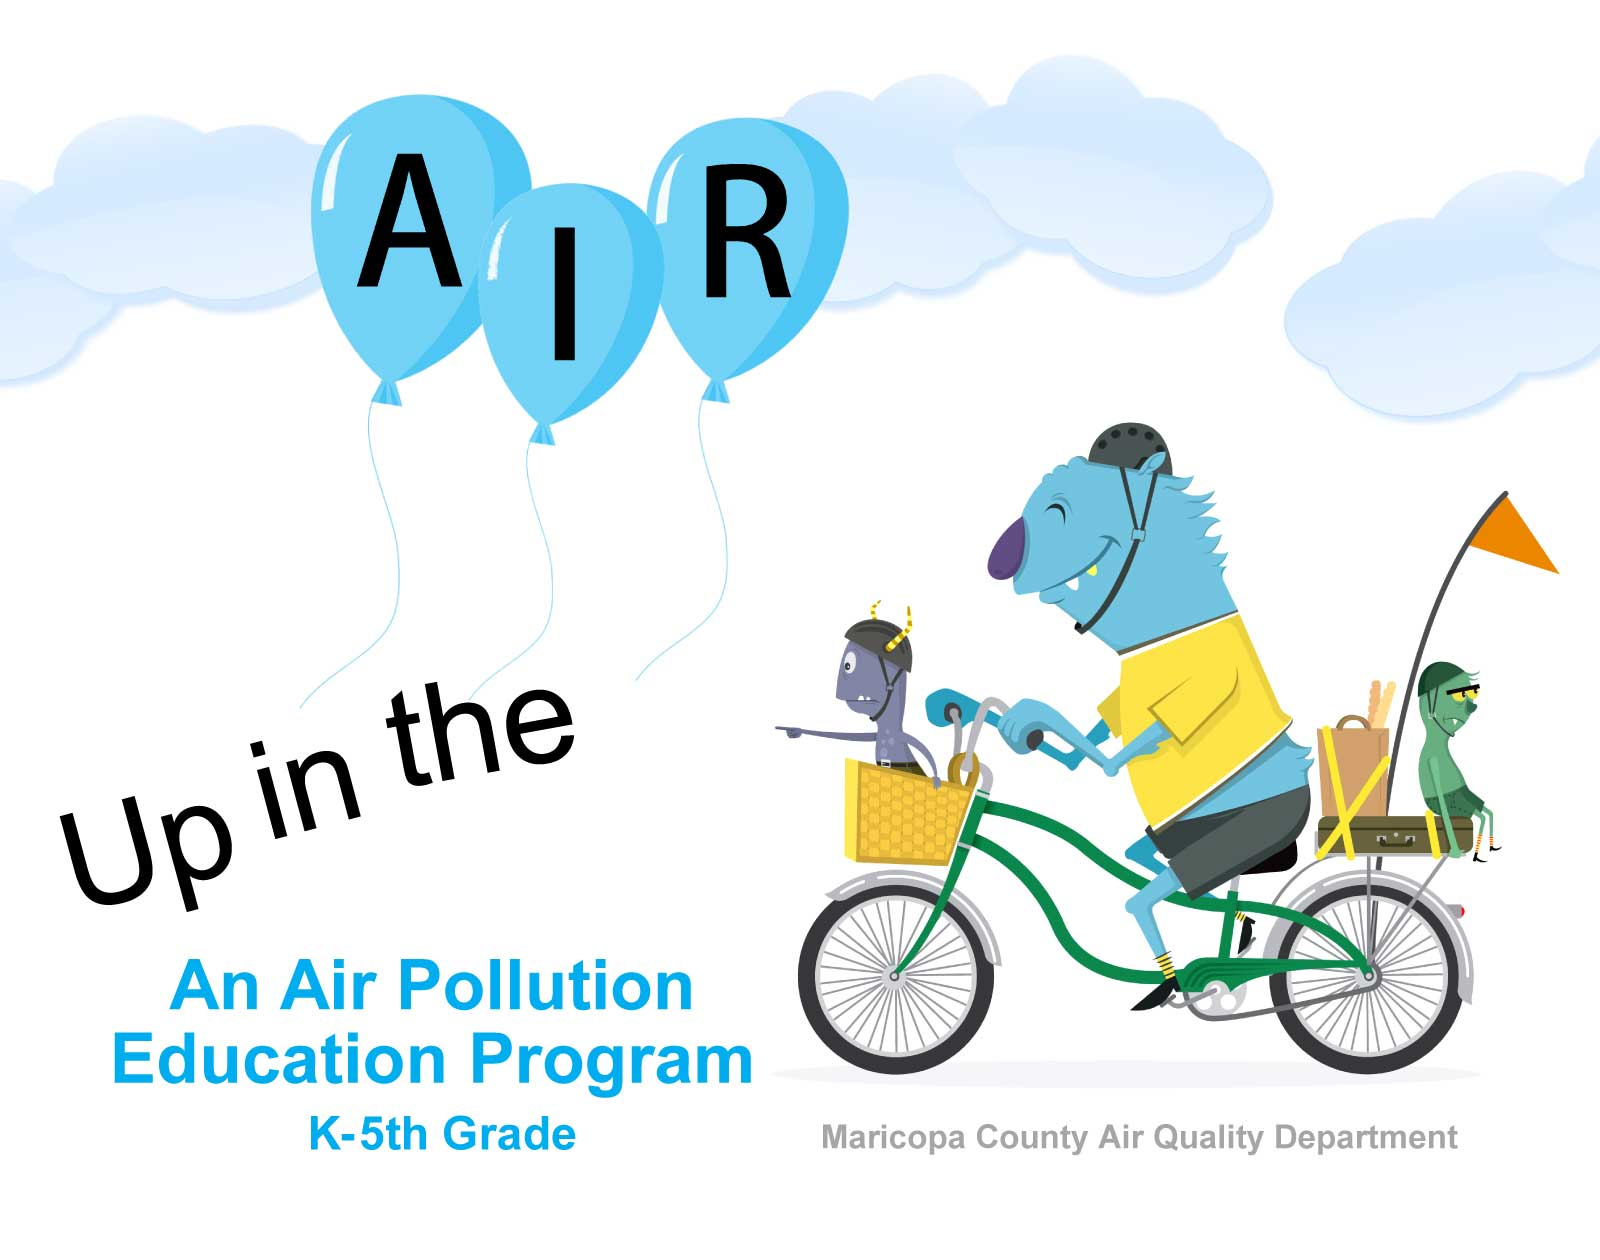 Up in the Air: An Air Pollution Education Curriculum for Grades K-5